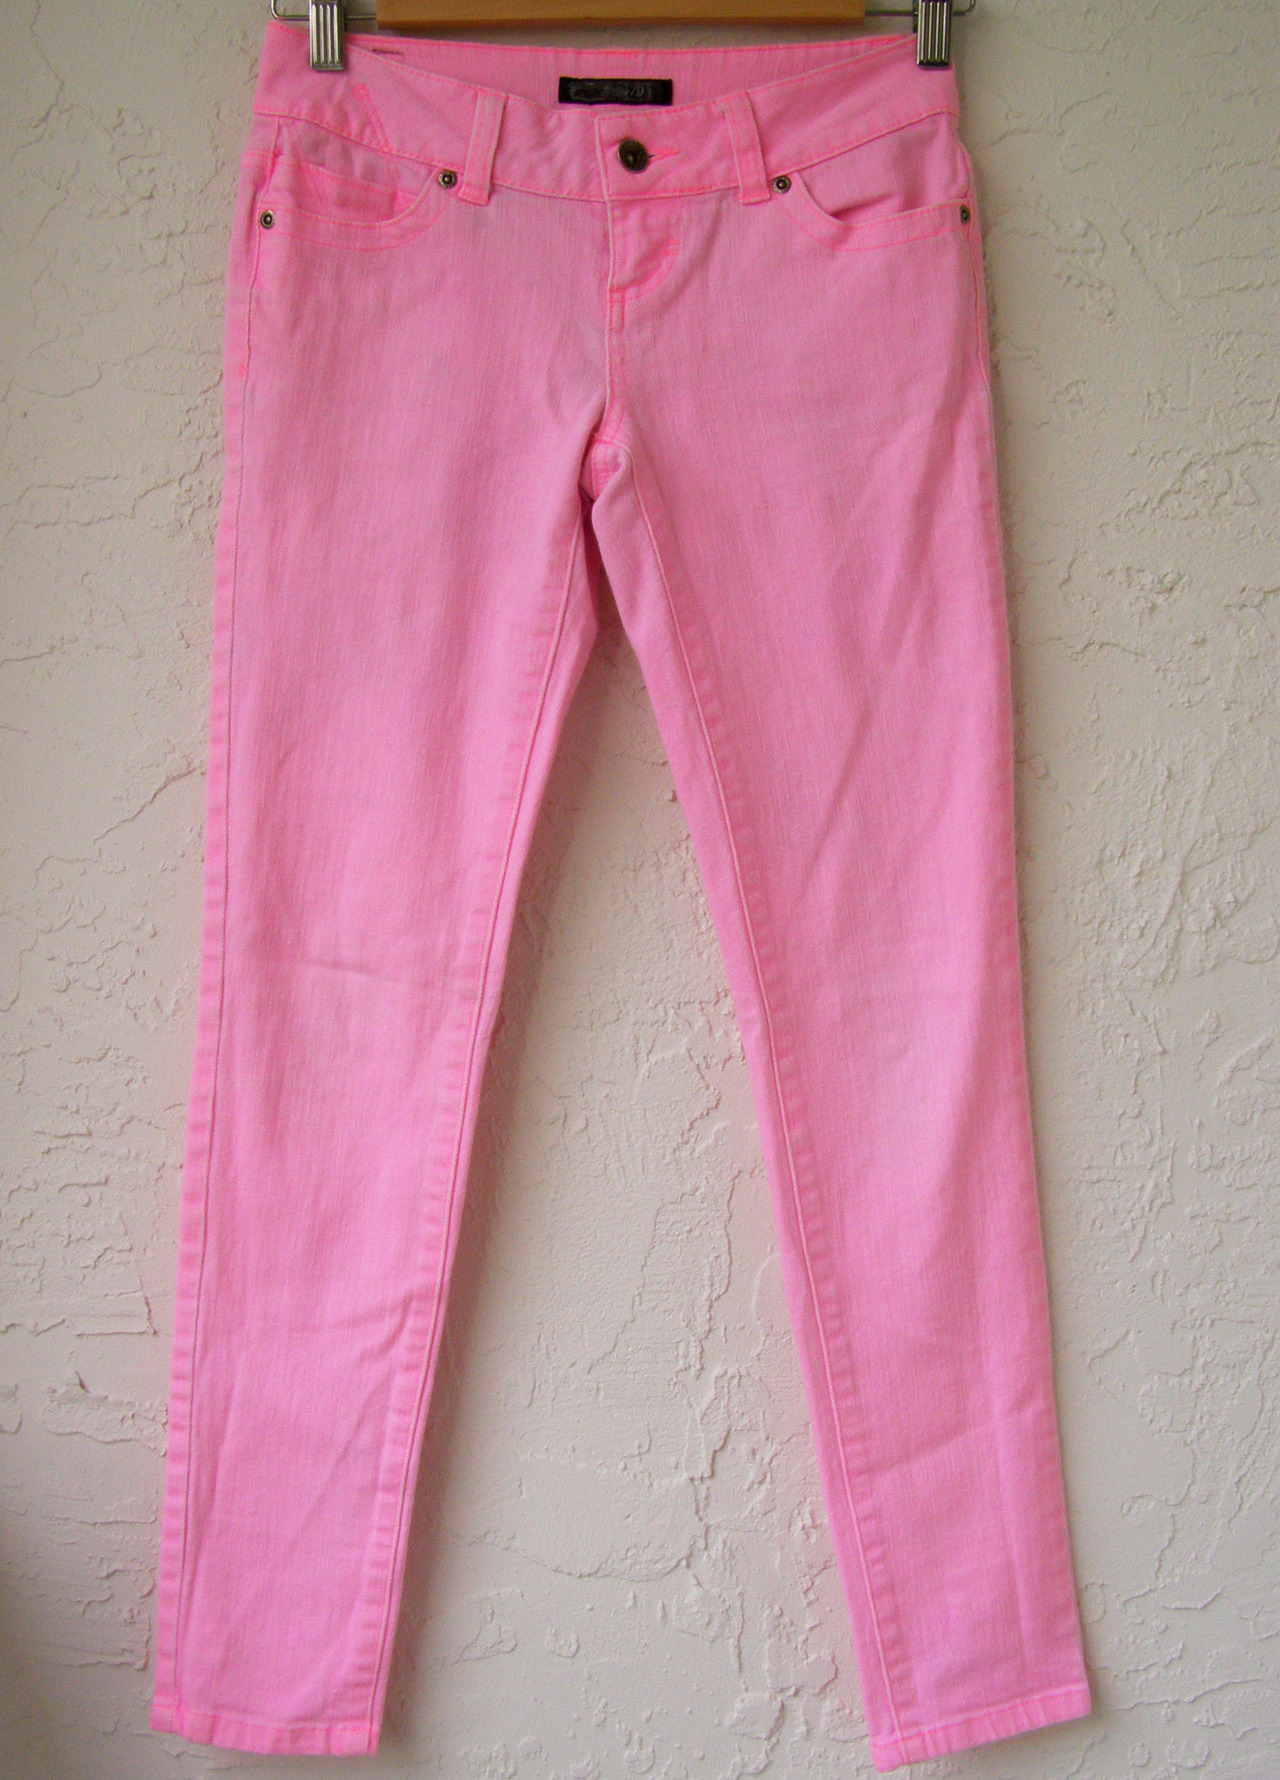 skinny, bright, neon, pink jeans, girls